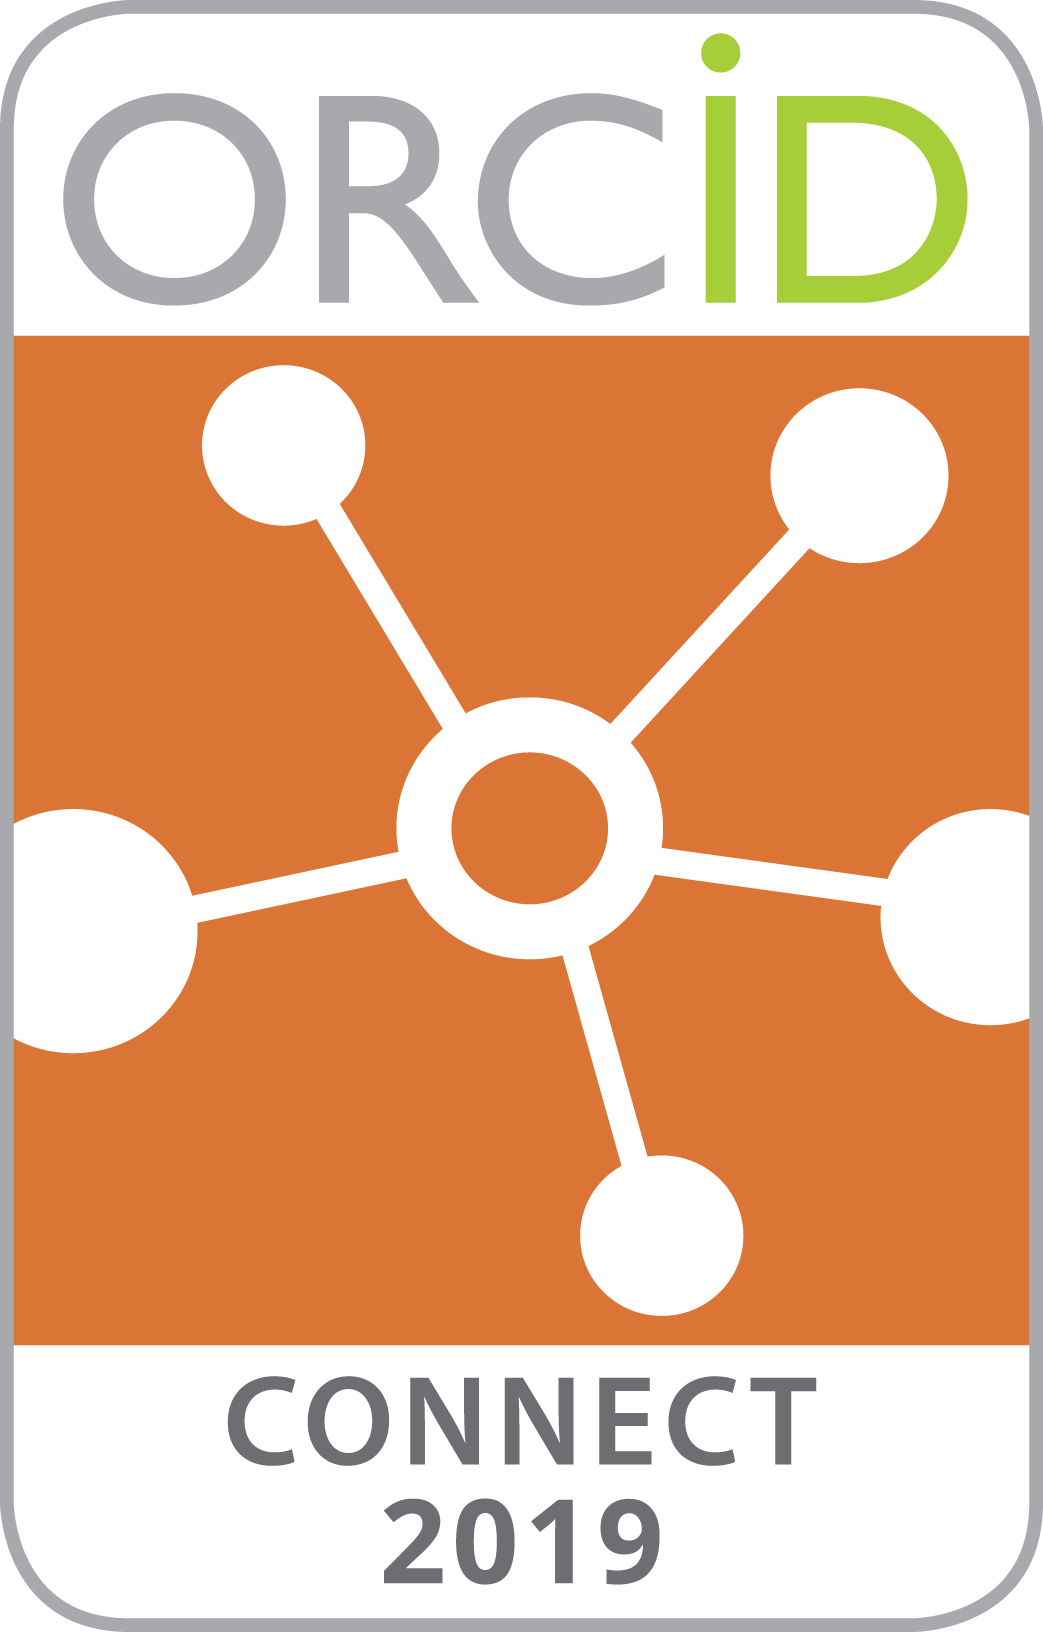 ORCID CONNECT Badge 2019